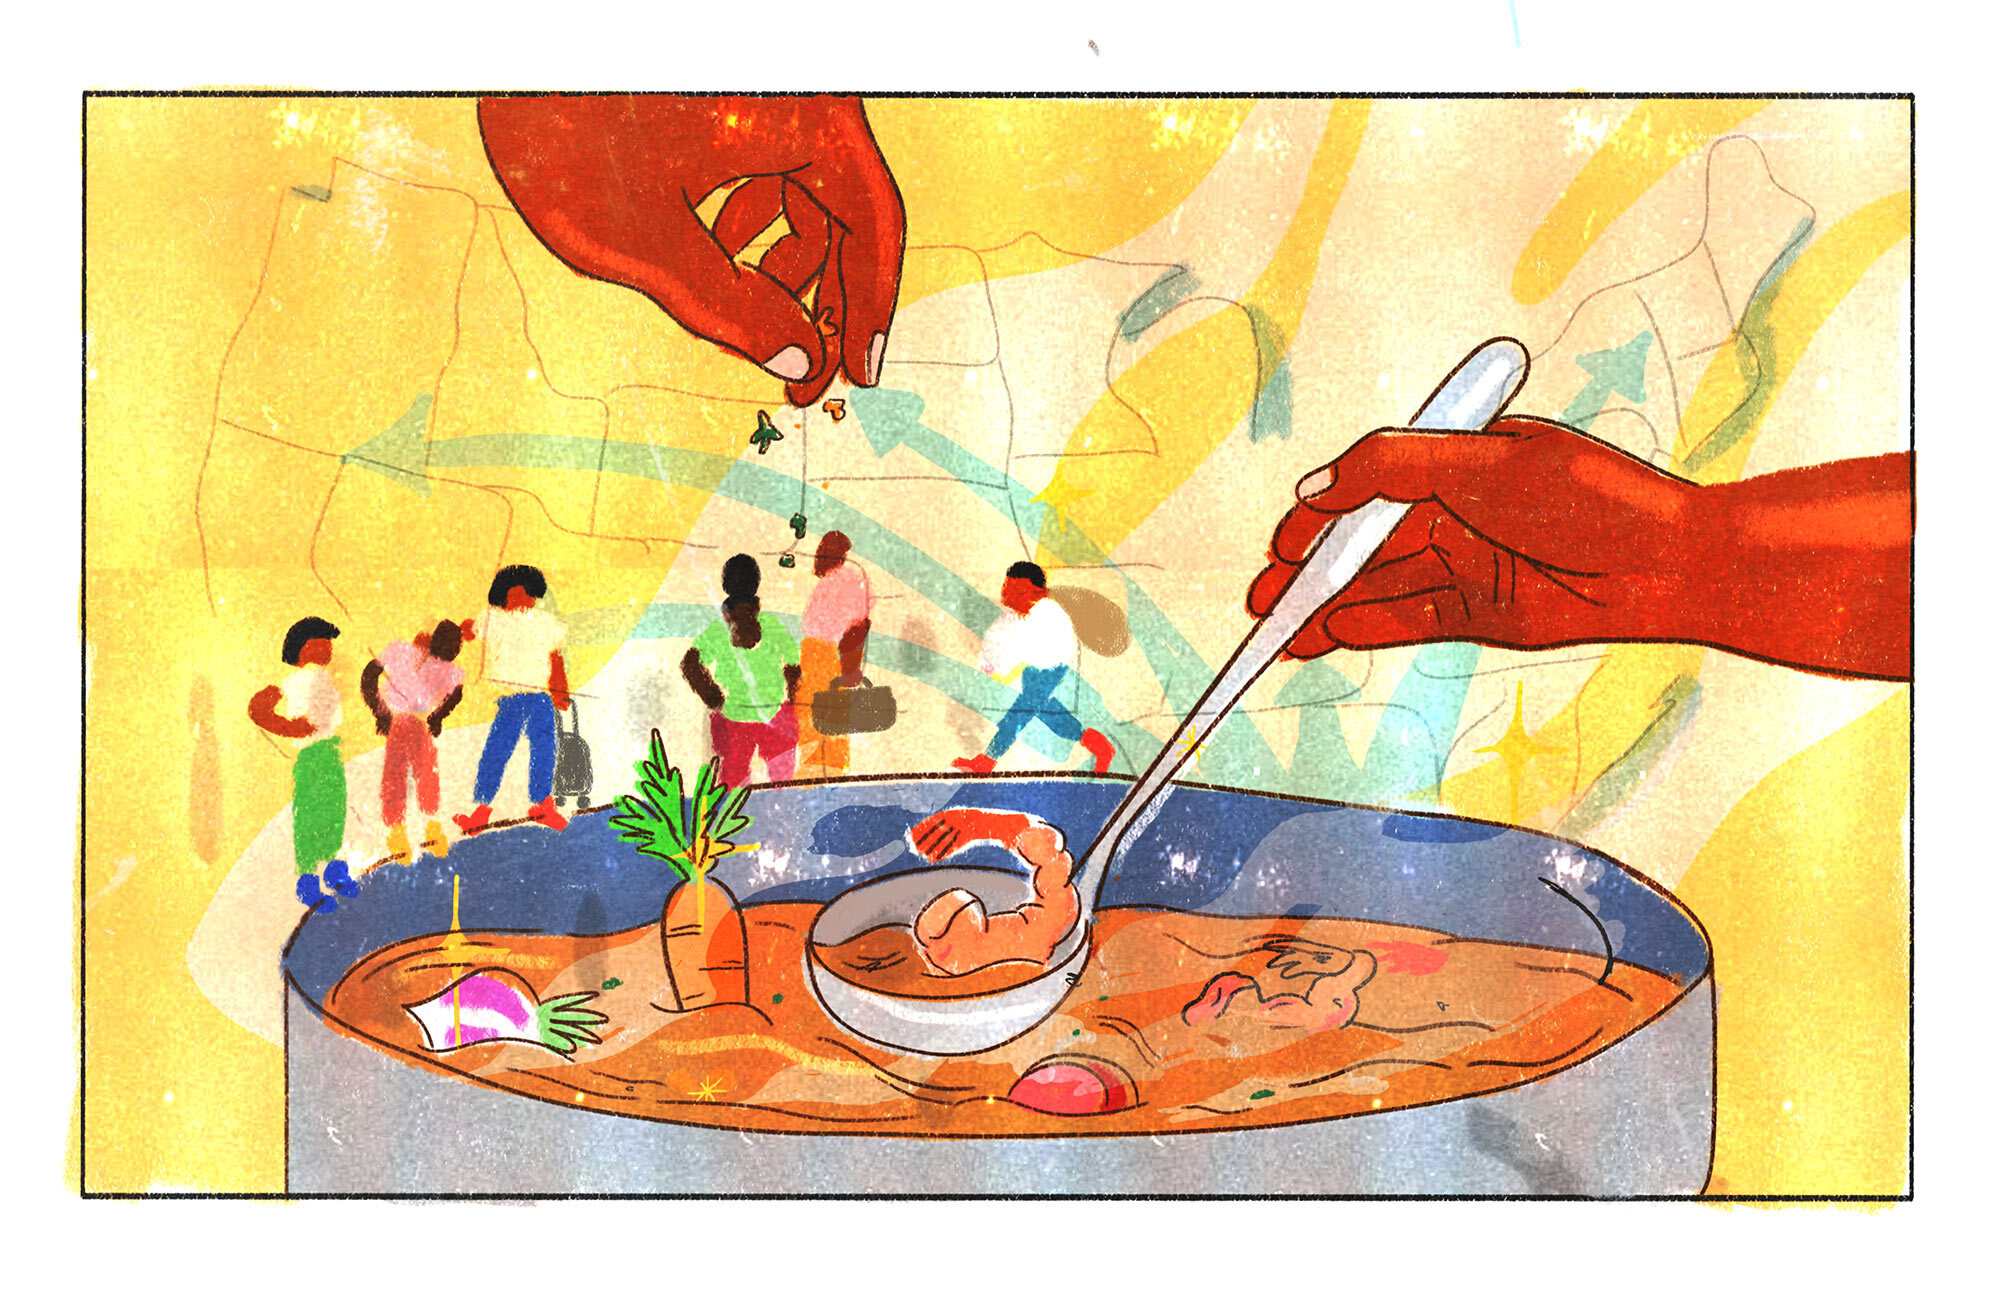 Migration Meals Illustration: Pot of soup with people around it